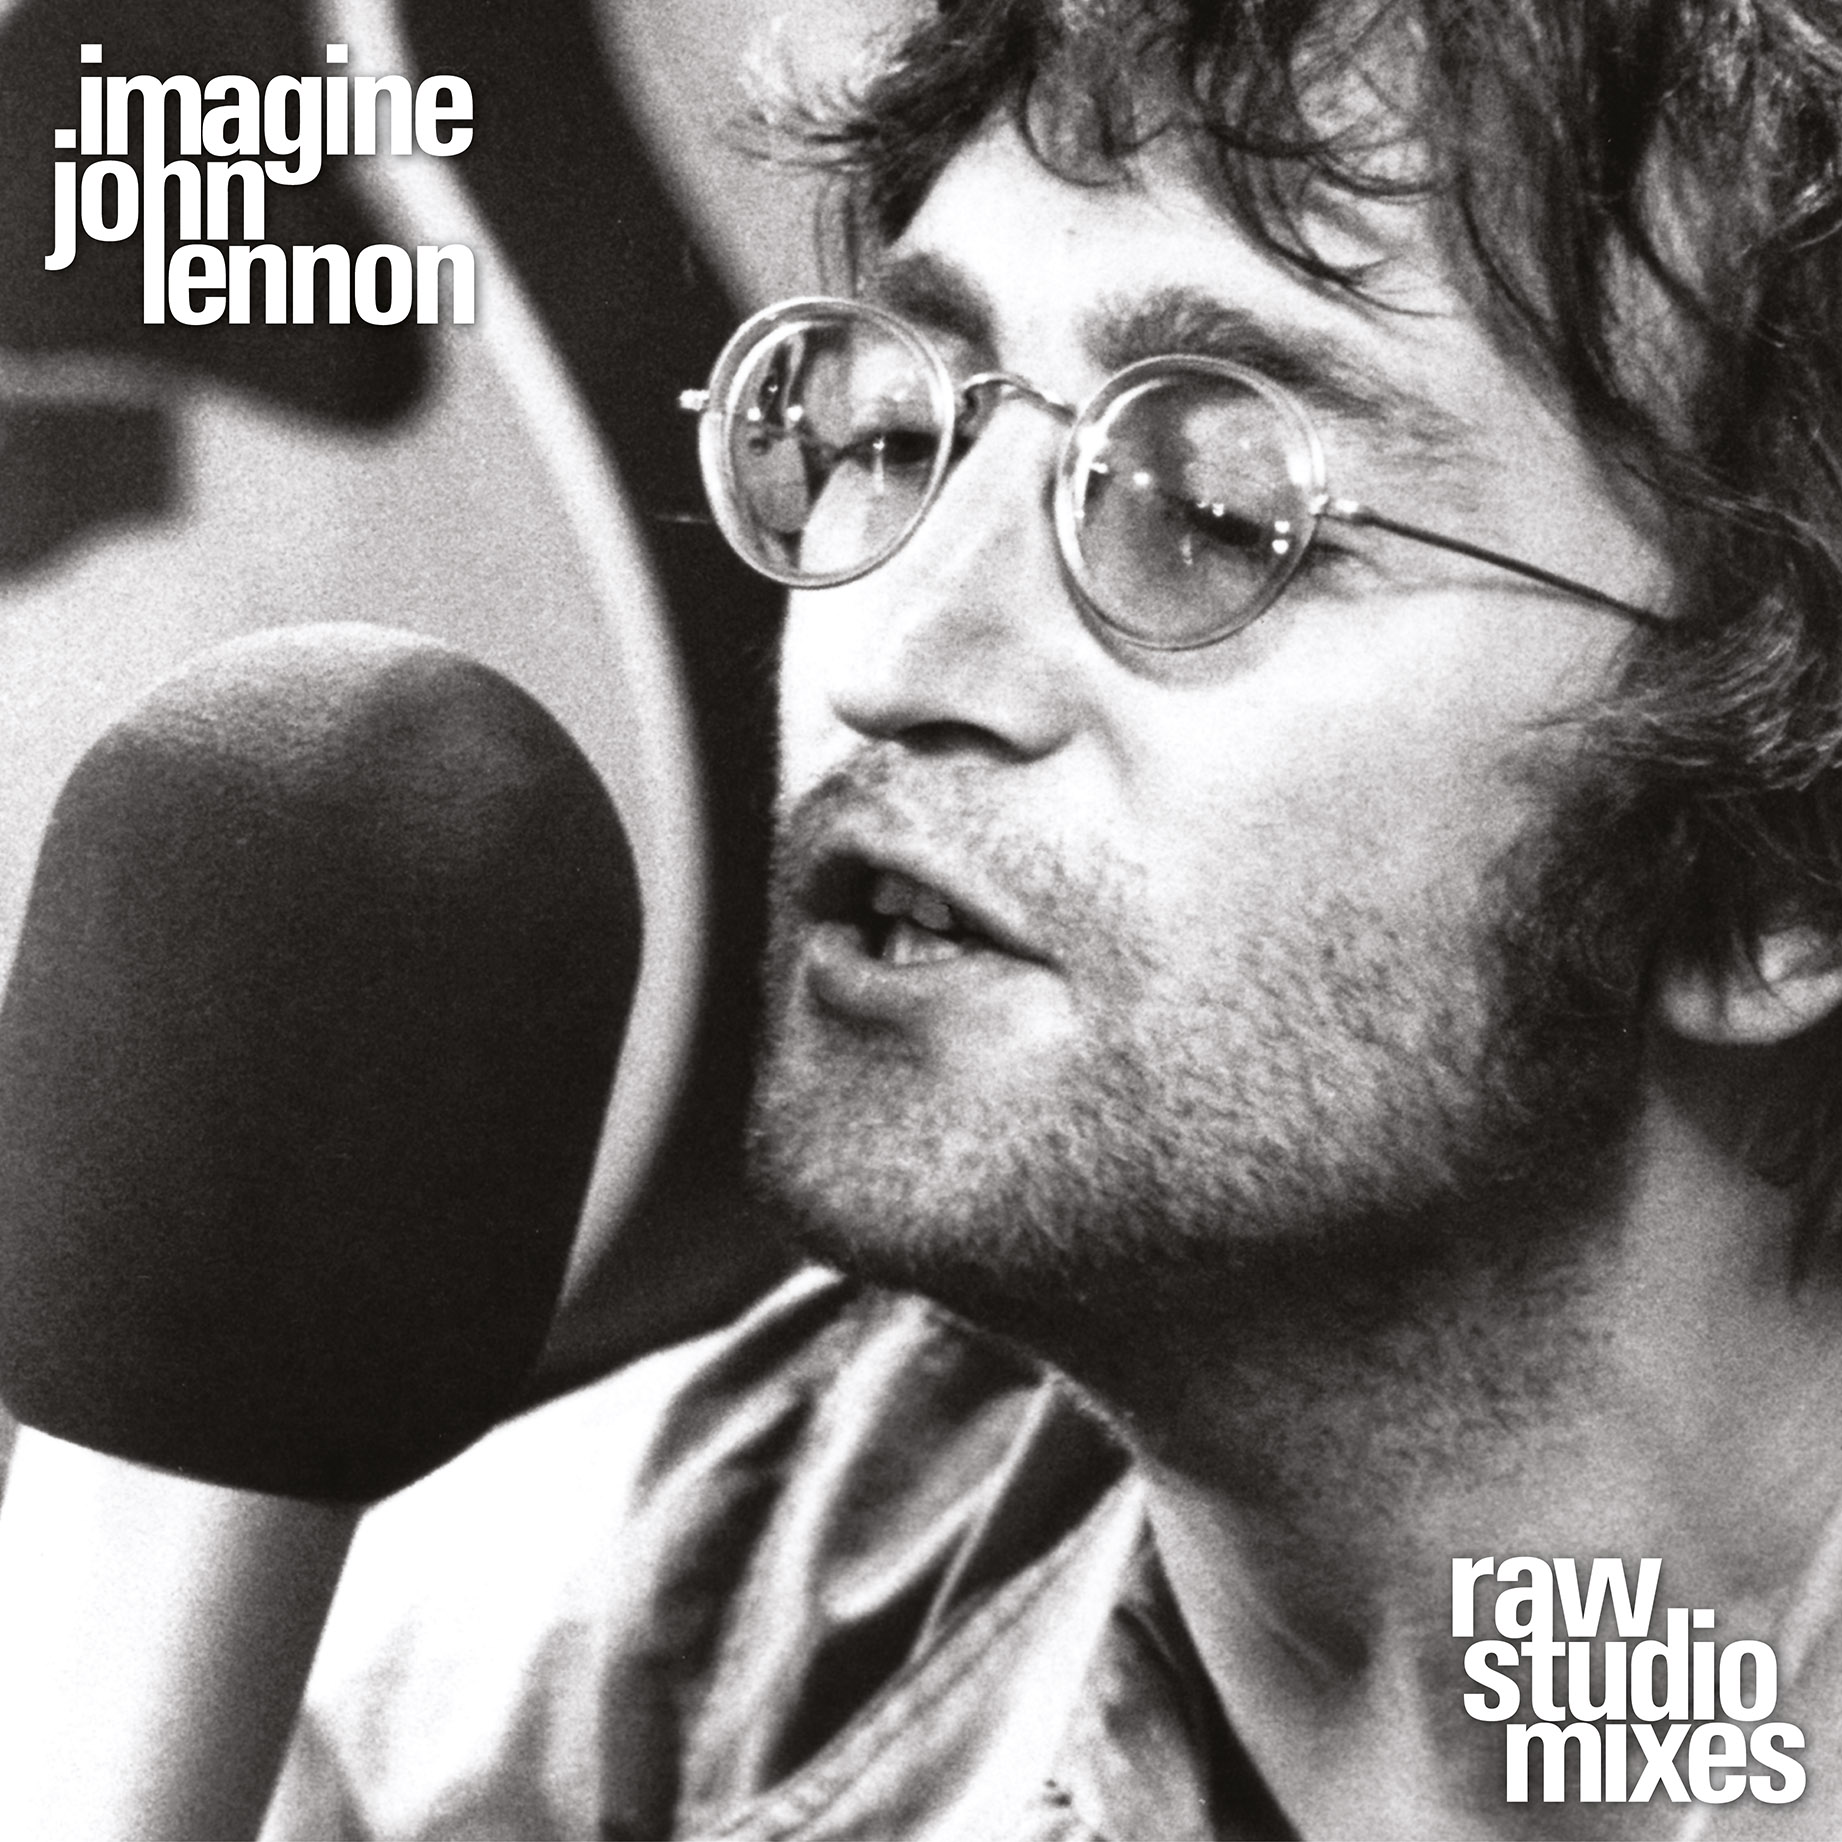 JOHN LENNON / IMAGINE (RAW STUDIO MIX)